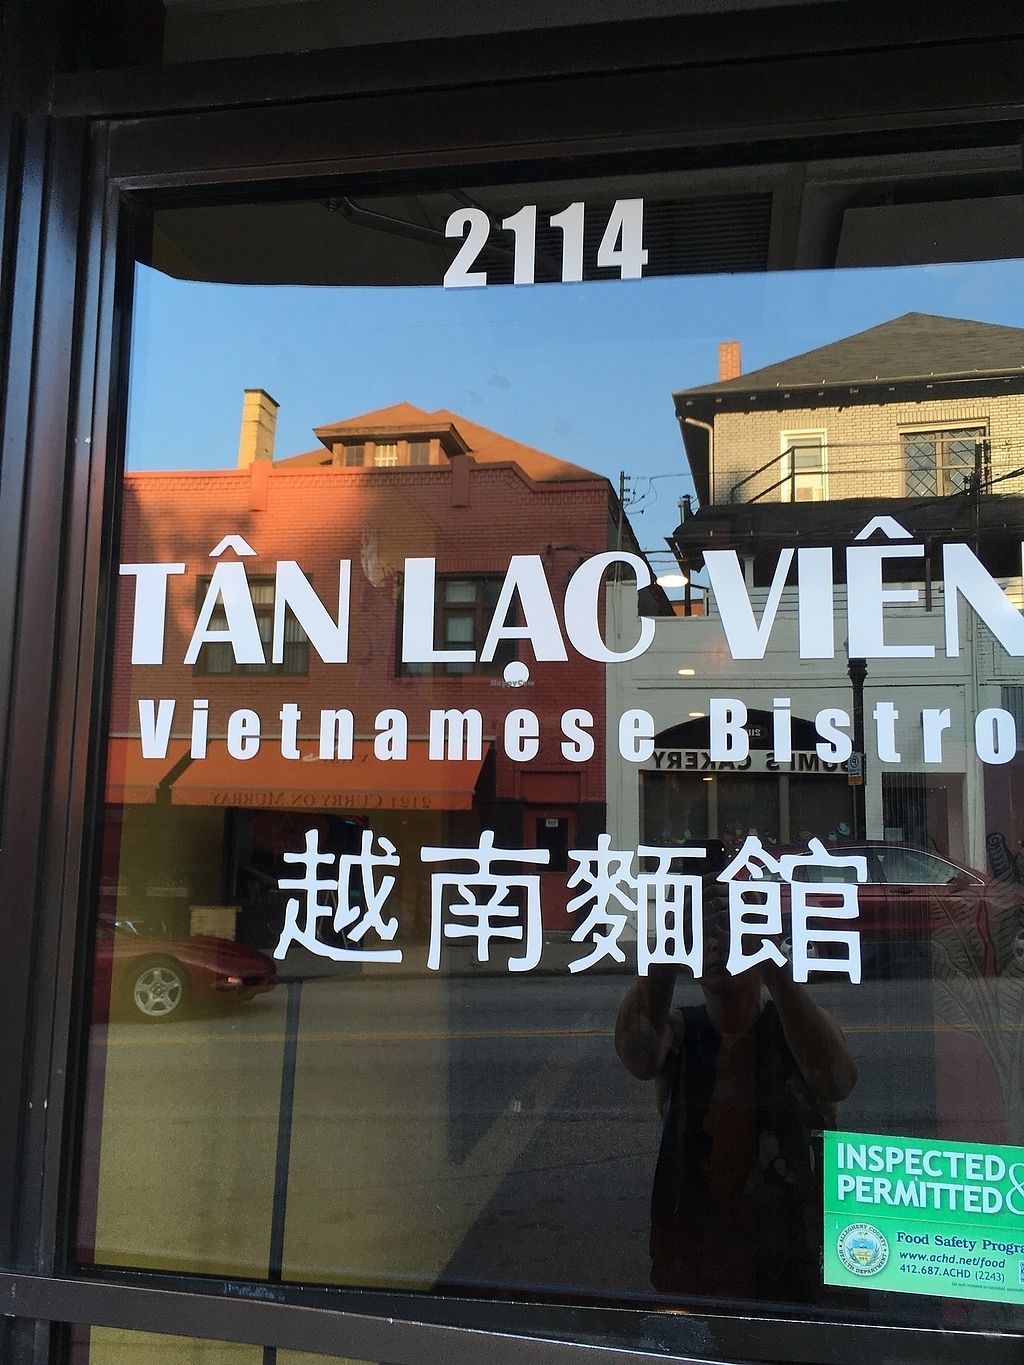 """Photo of Tan Lac Vien Vietnamese Bistro  by <a href=""""/members/profile/ecoRDN"""">ecoRDN</a> <br/>Tan Lac Vien - Squirrel Hill Photo by ecoRDN - ecoRDN.com <br/> July 16, 2017  - <a href='/contact/abuse/image/93466/280990'>Report</a>"""